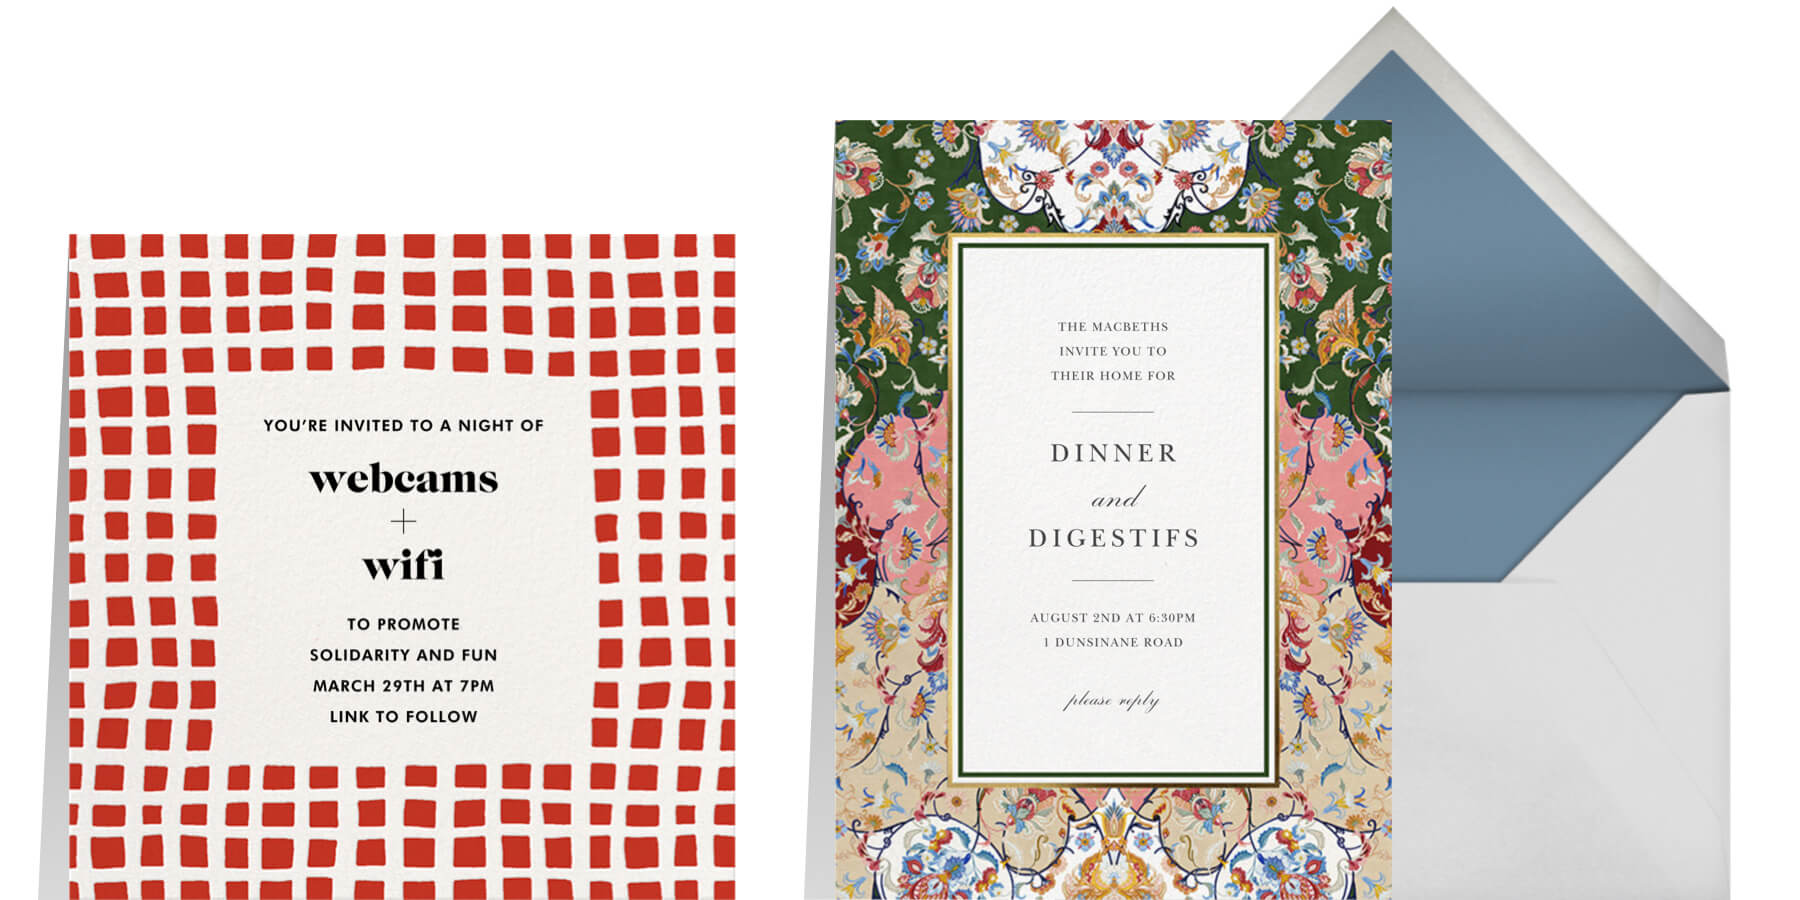 Left: Asymmetric invitation by kate space new york for Paperless Post. Right: Toile Arabesque invitation by Oscar de la Renta for Paperless Post